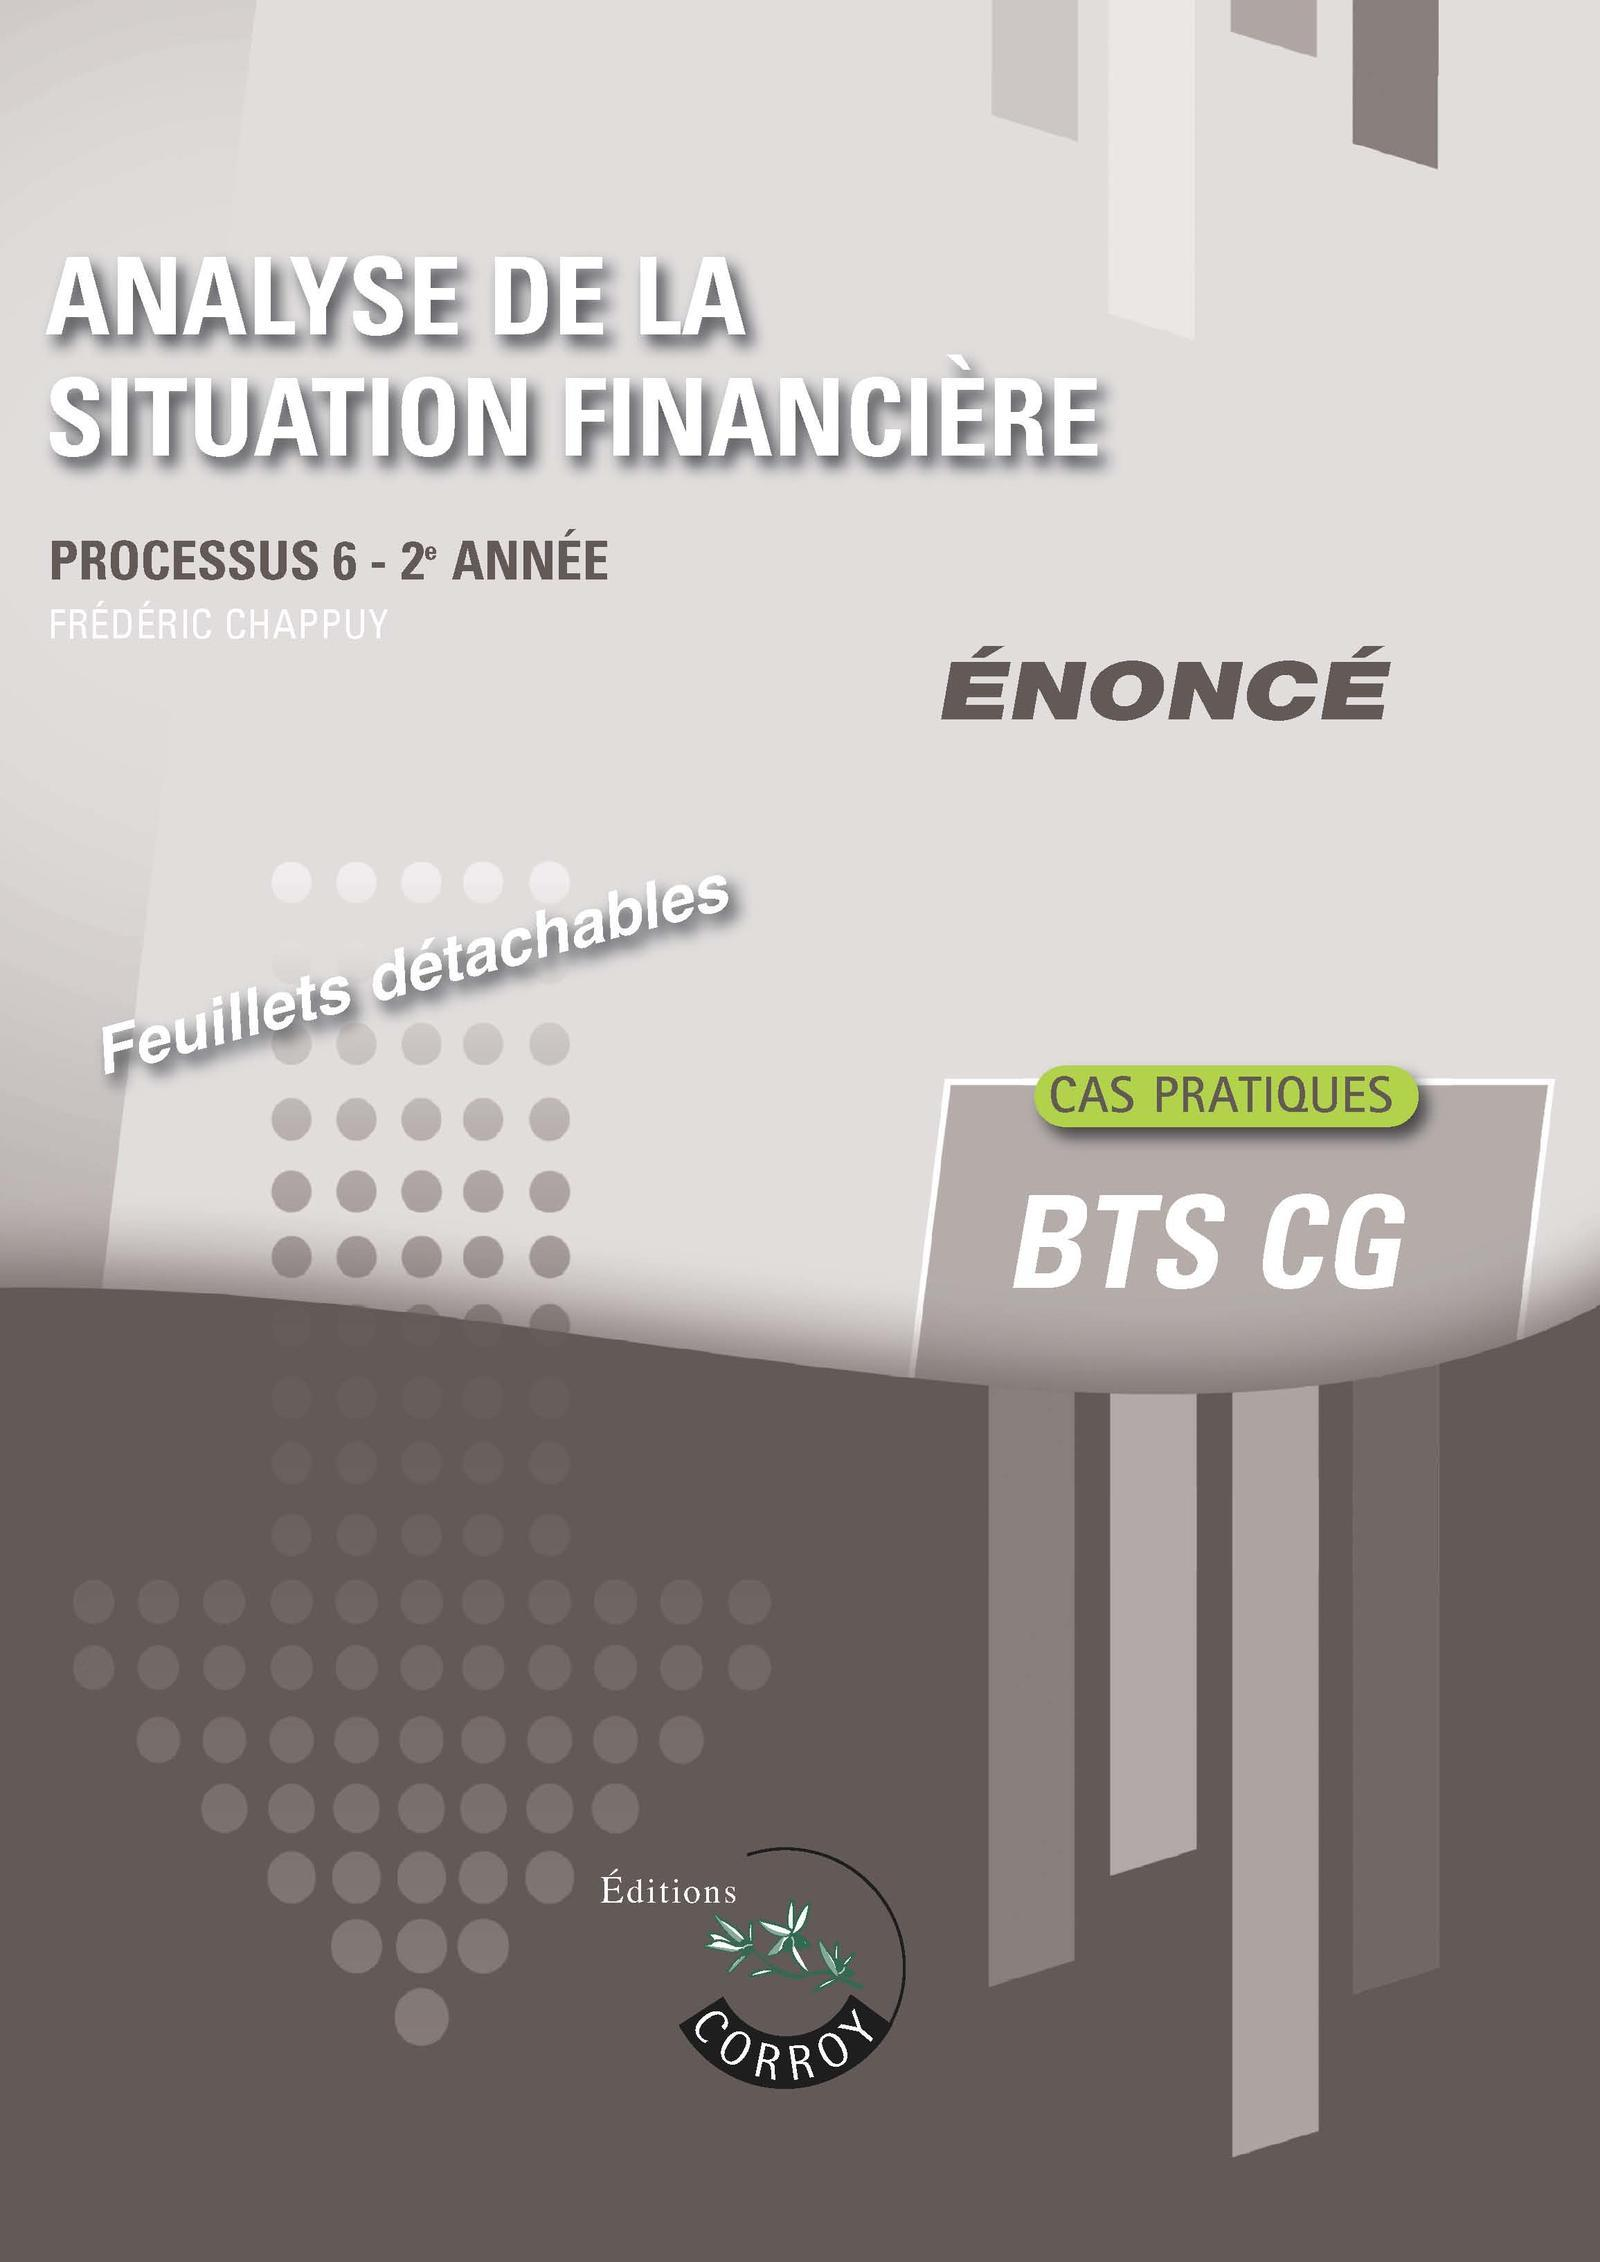 ANALYSE DE LA SITUATION FINANCIERE - ENONCE